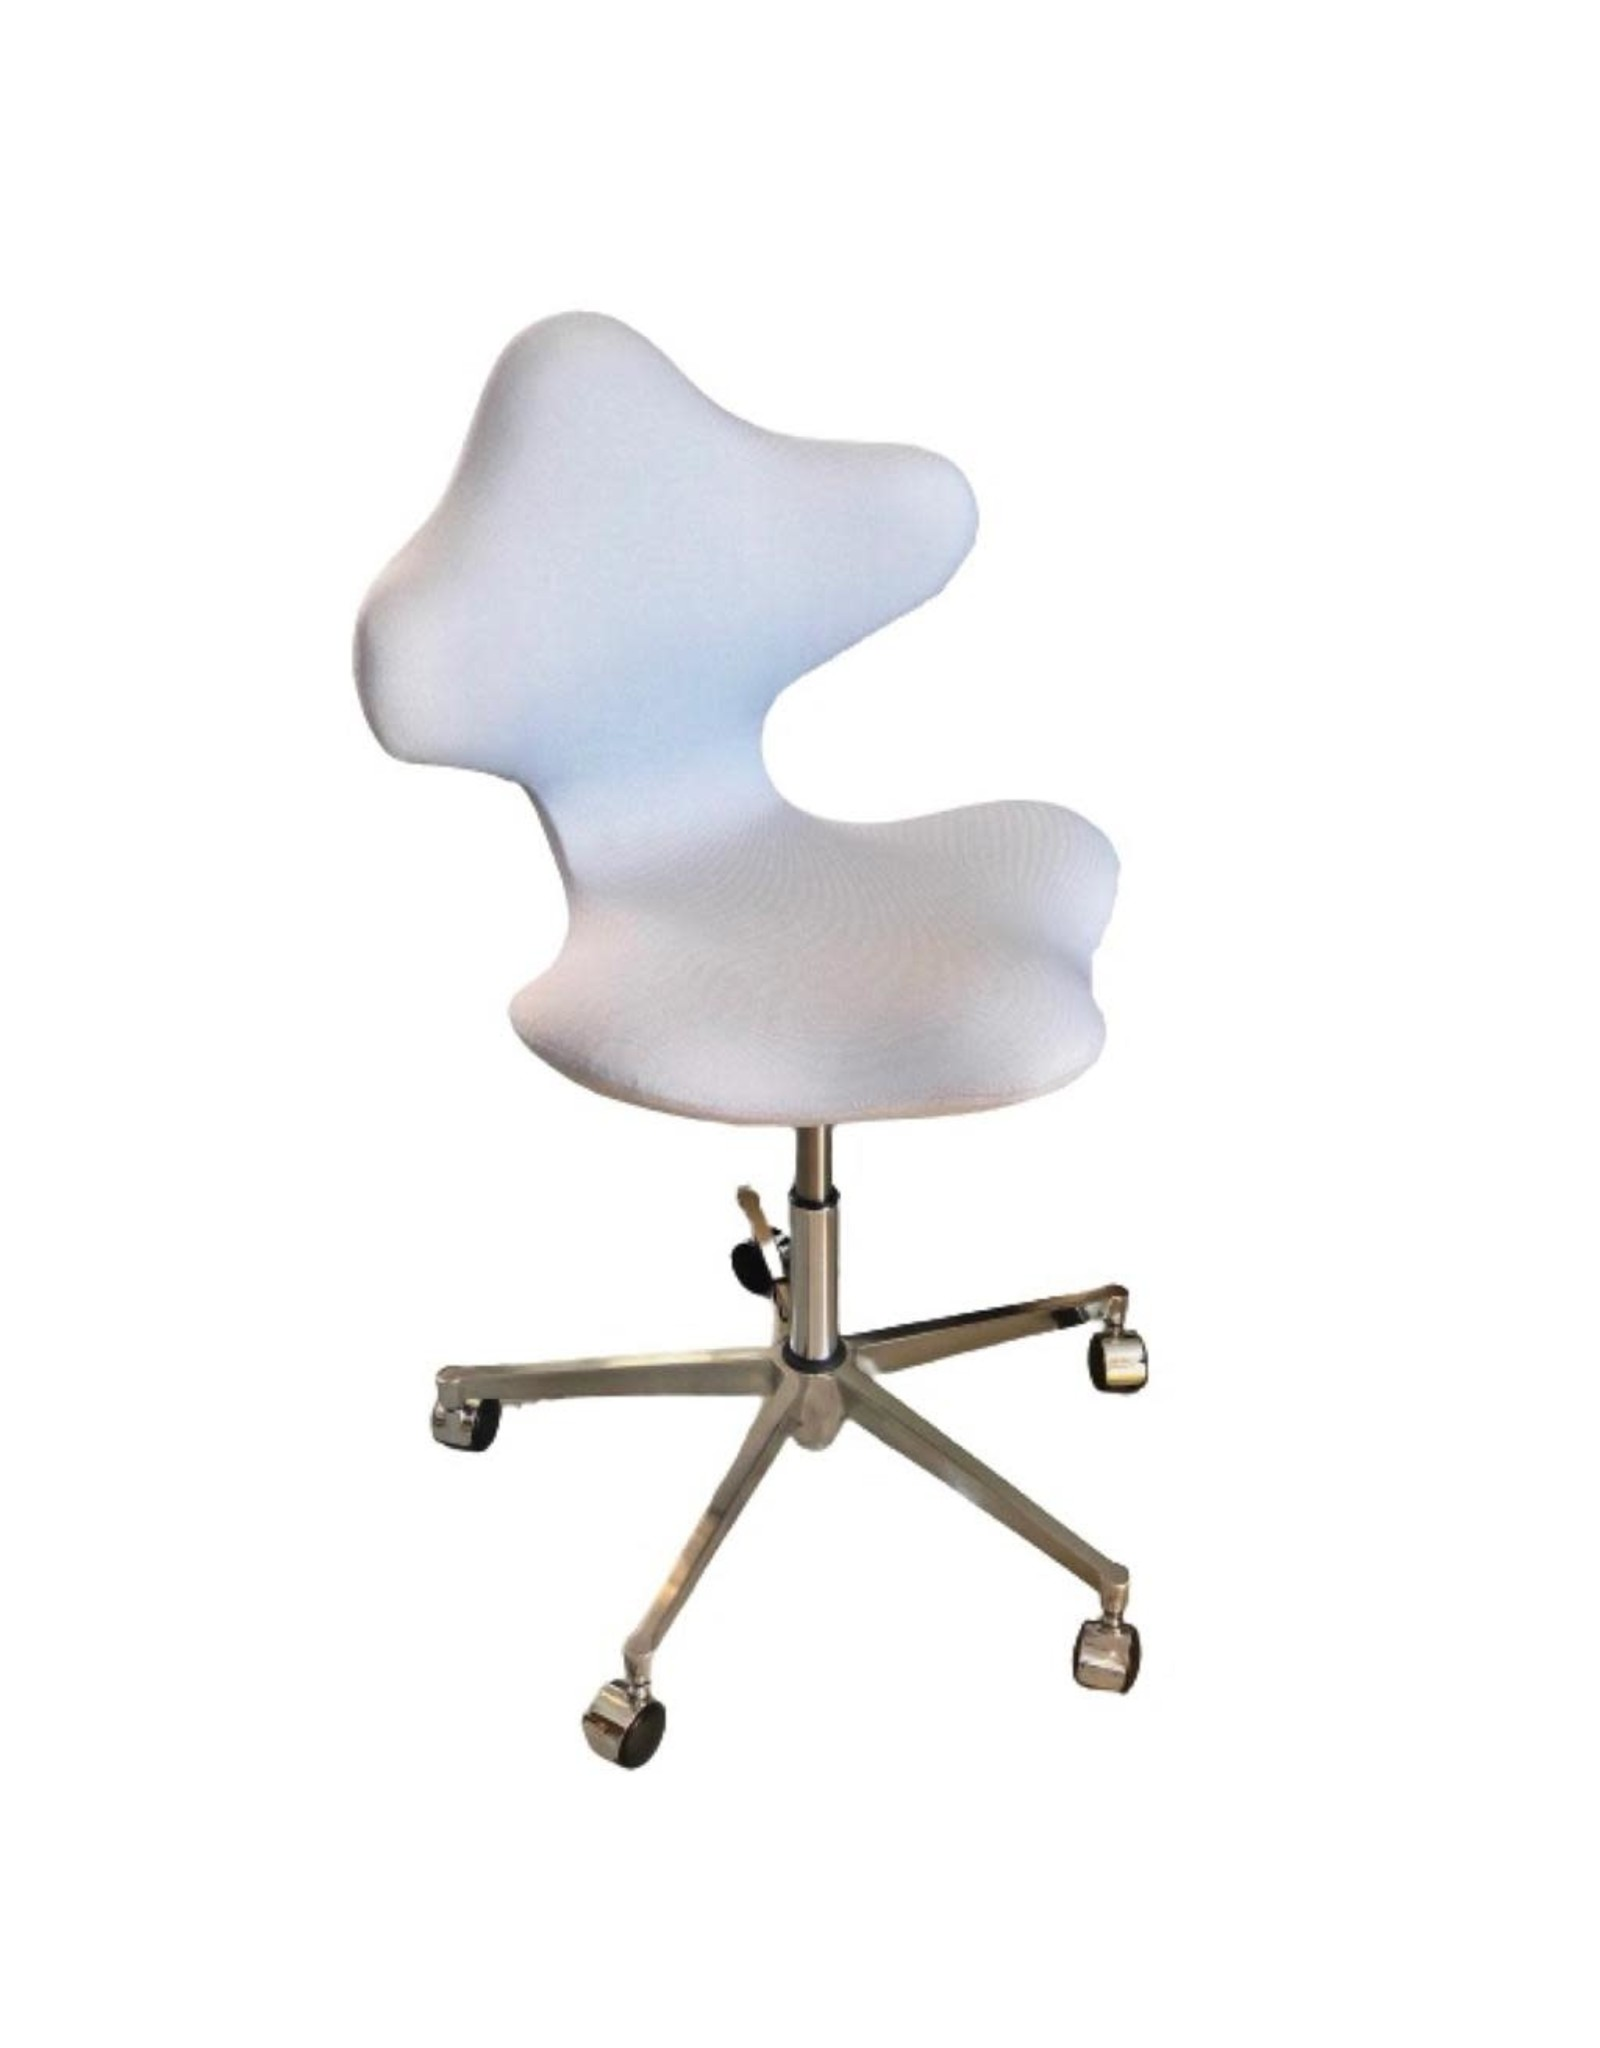 ACTIVE HEIGHT ADJUSTABLE SWIVEL CHAIR IN LIGHT GREY #144 REVIVE FABRIC